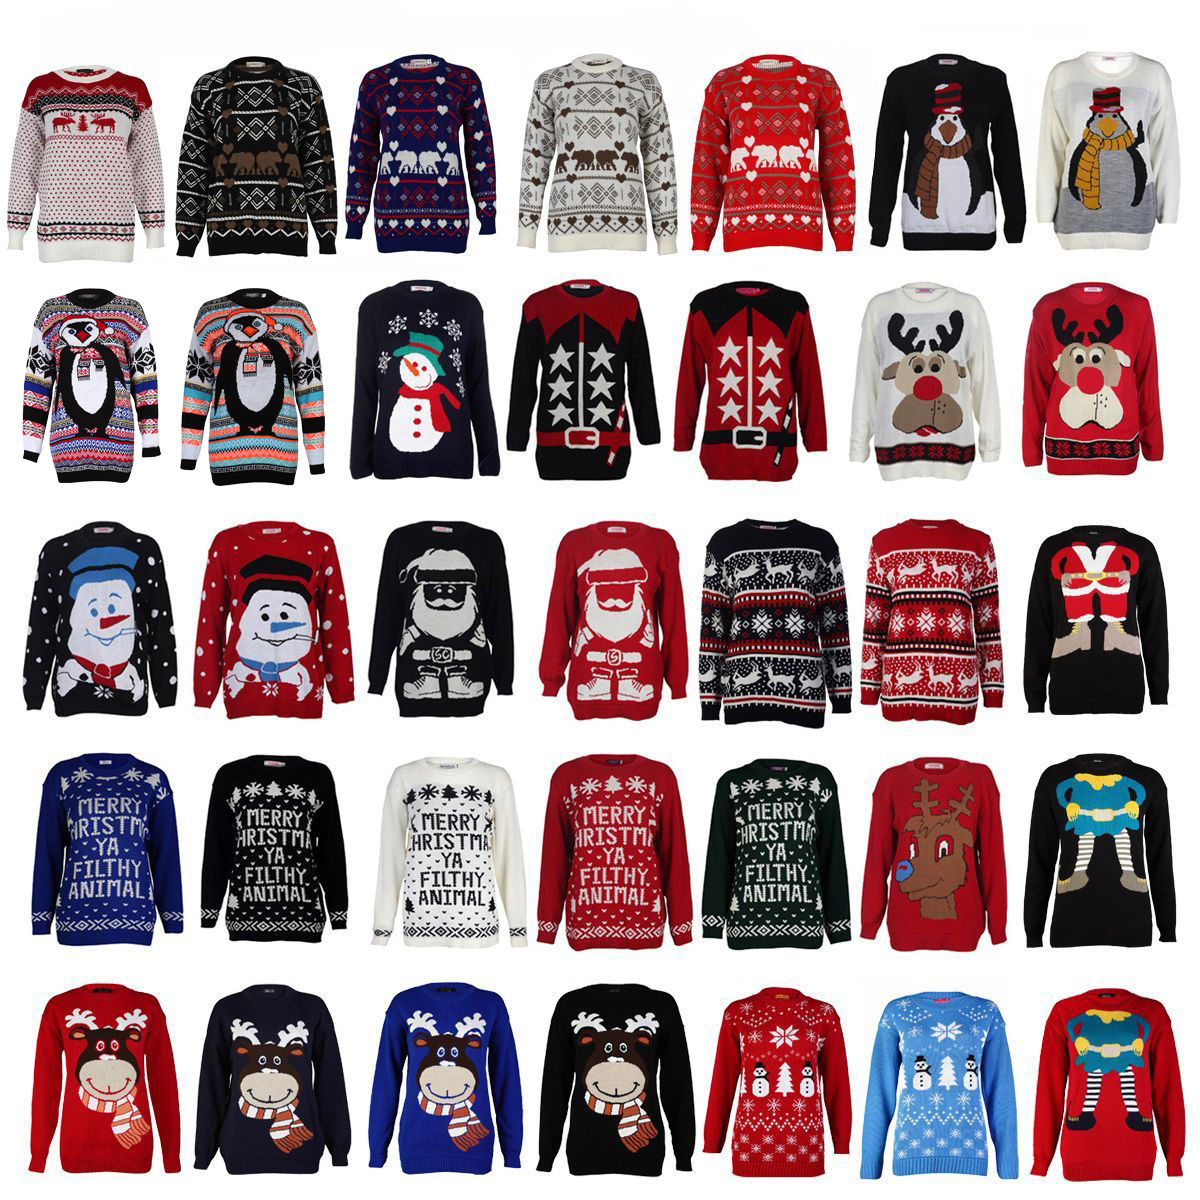 Christmas Jumpers Uk Sale Pictures Wallpapers